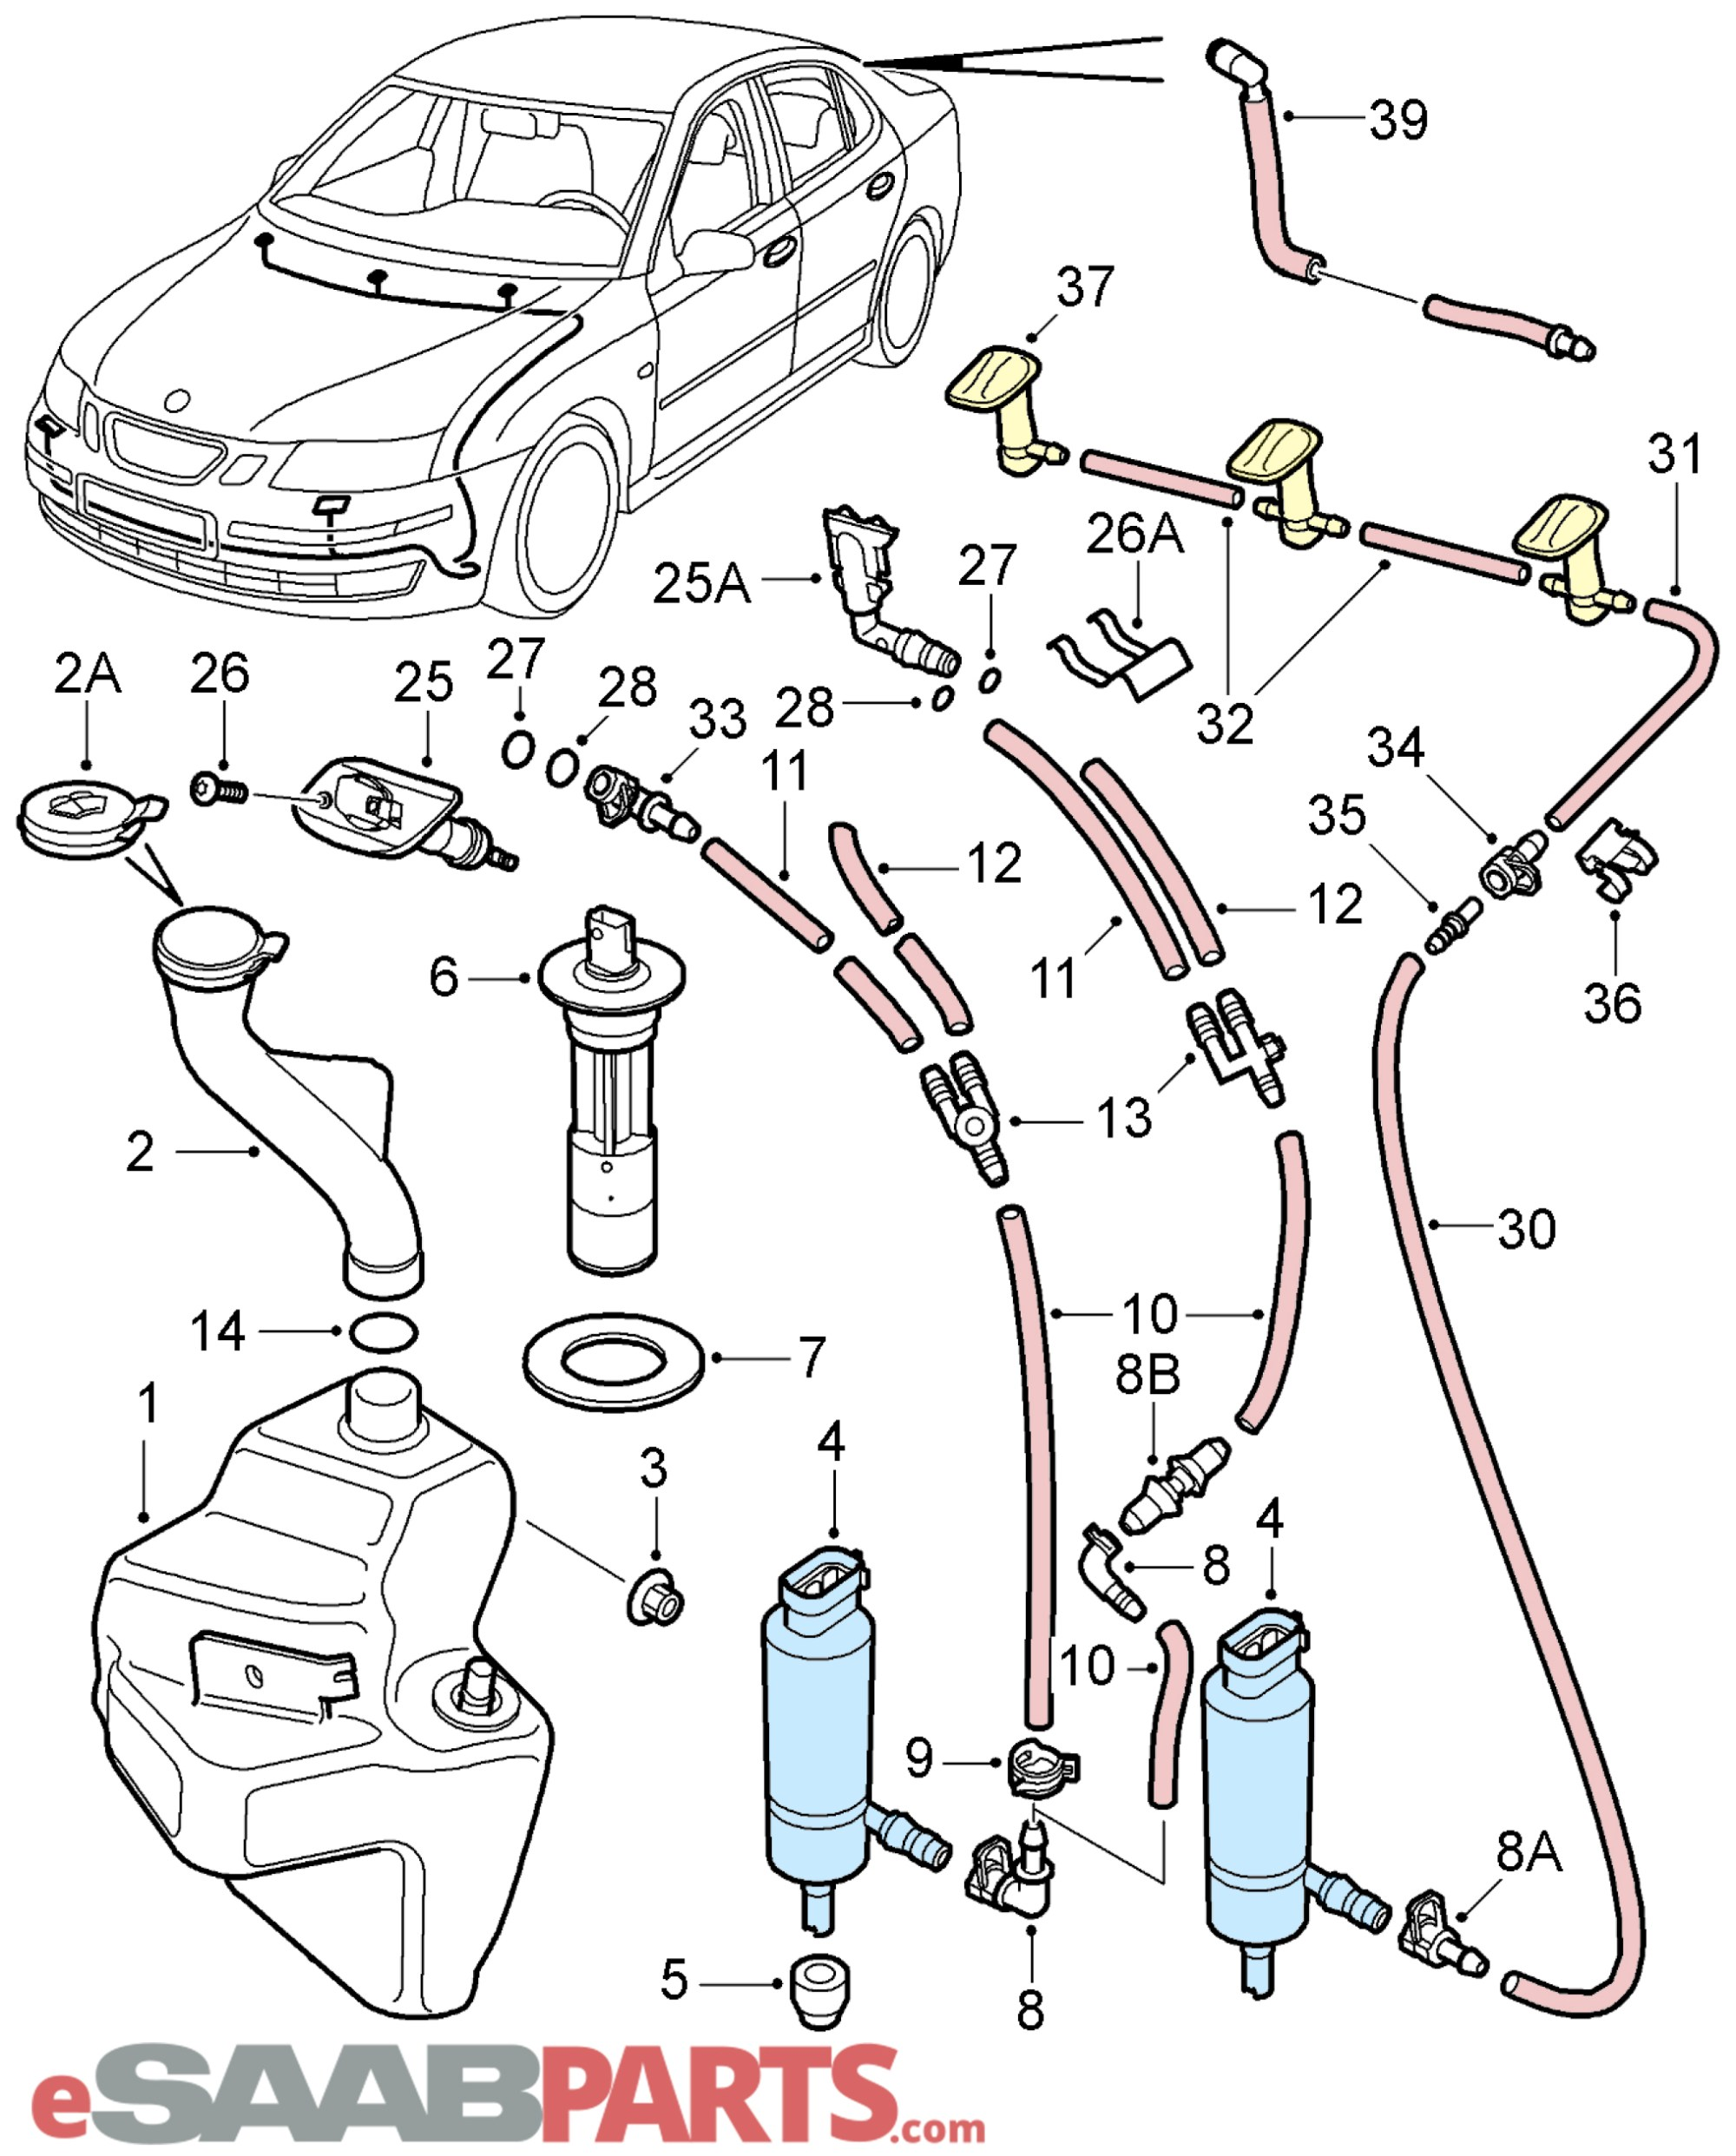 hight resolution of esaabparts com saab 9 3 9440 electrical parts wiper washer system washer system windshield headlights